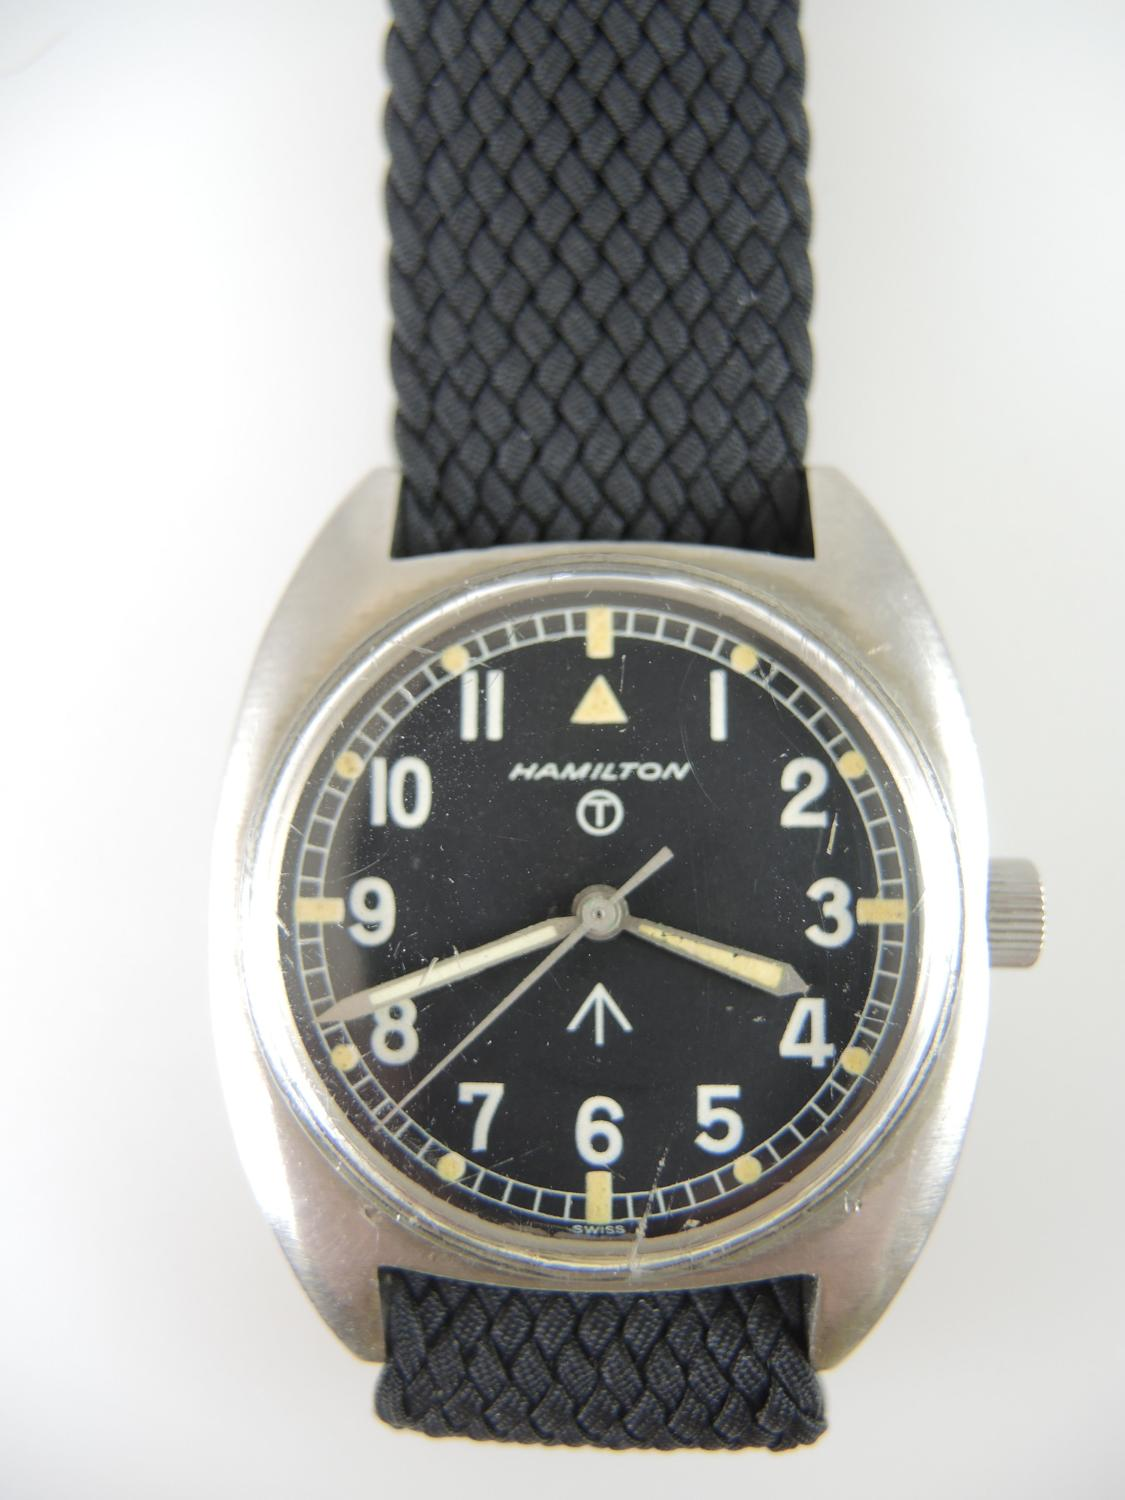 British Military Hamilton Wrist Watch c1975